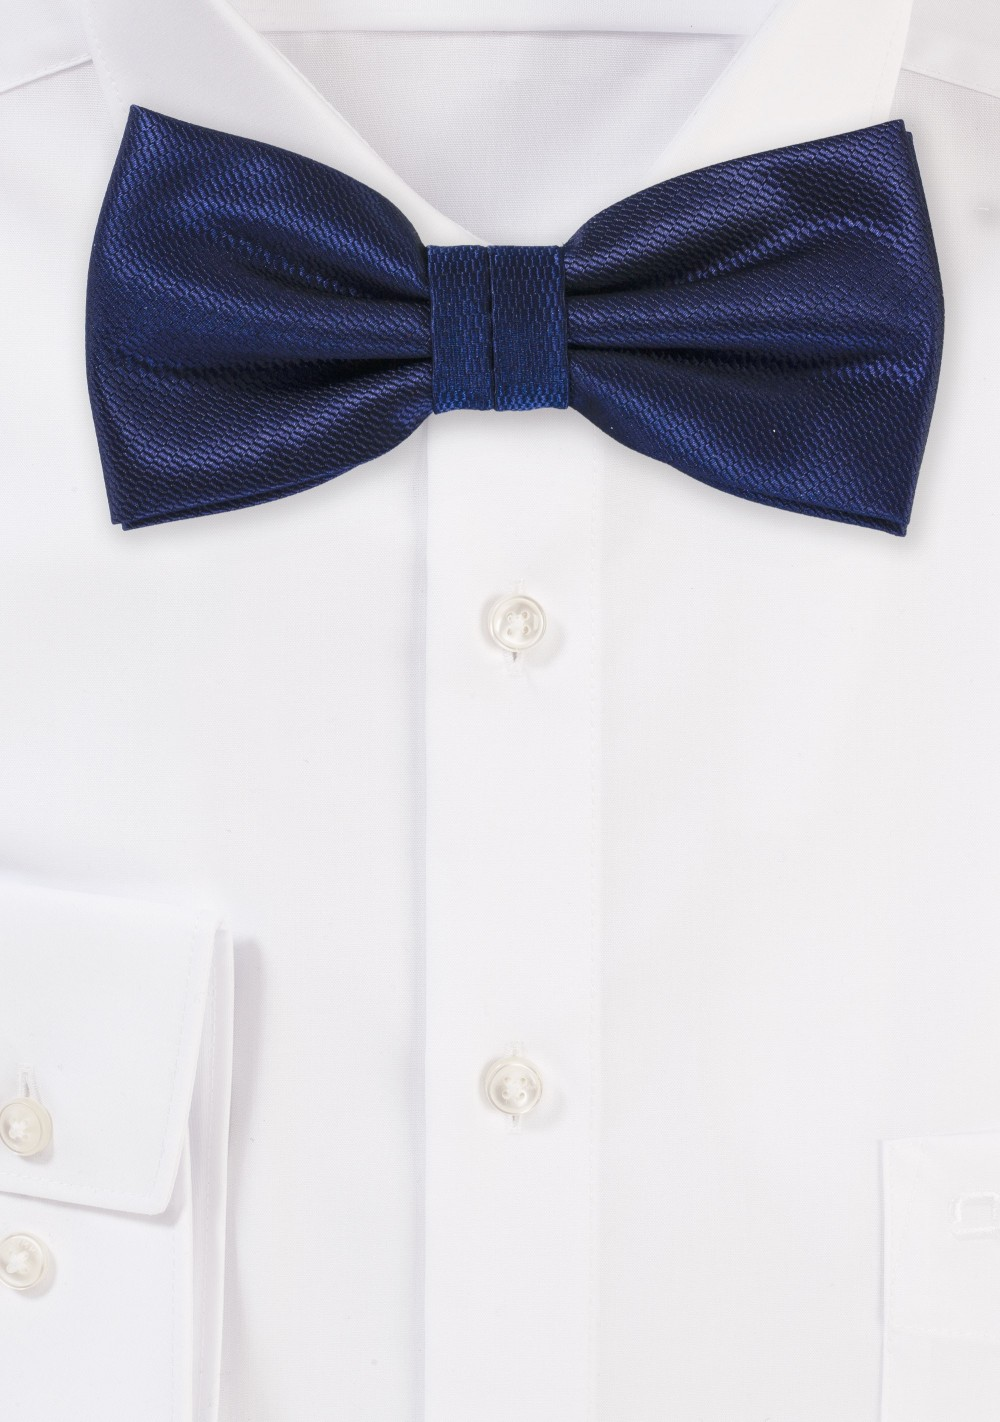 Dress Bow Tie in Formal Navy